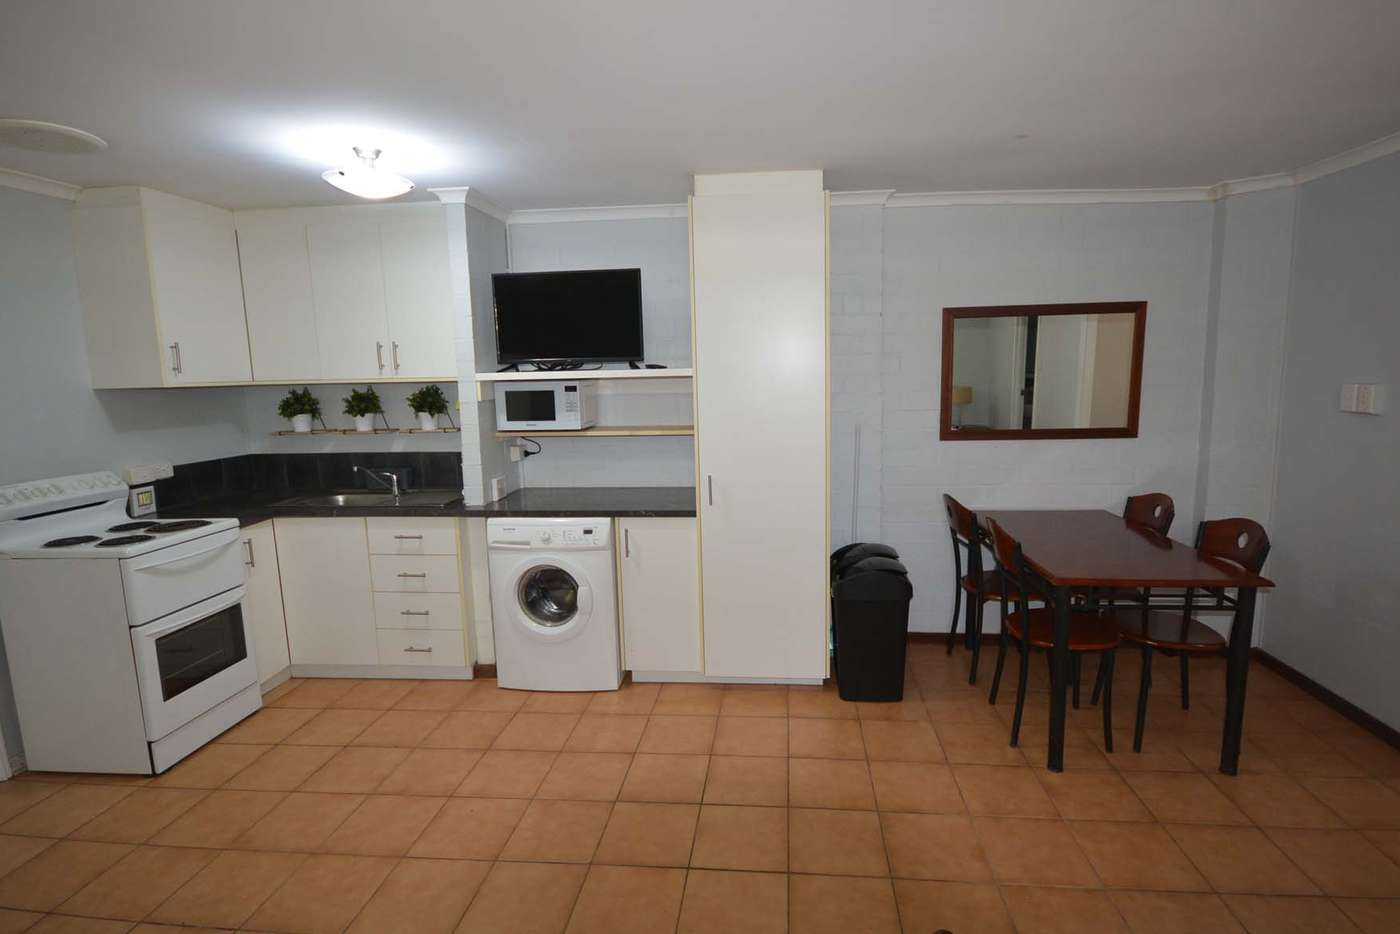 Main view of Homely unit listing, 178/122 Port Drive, Cable Beach WA 6726